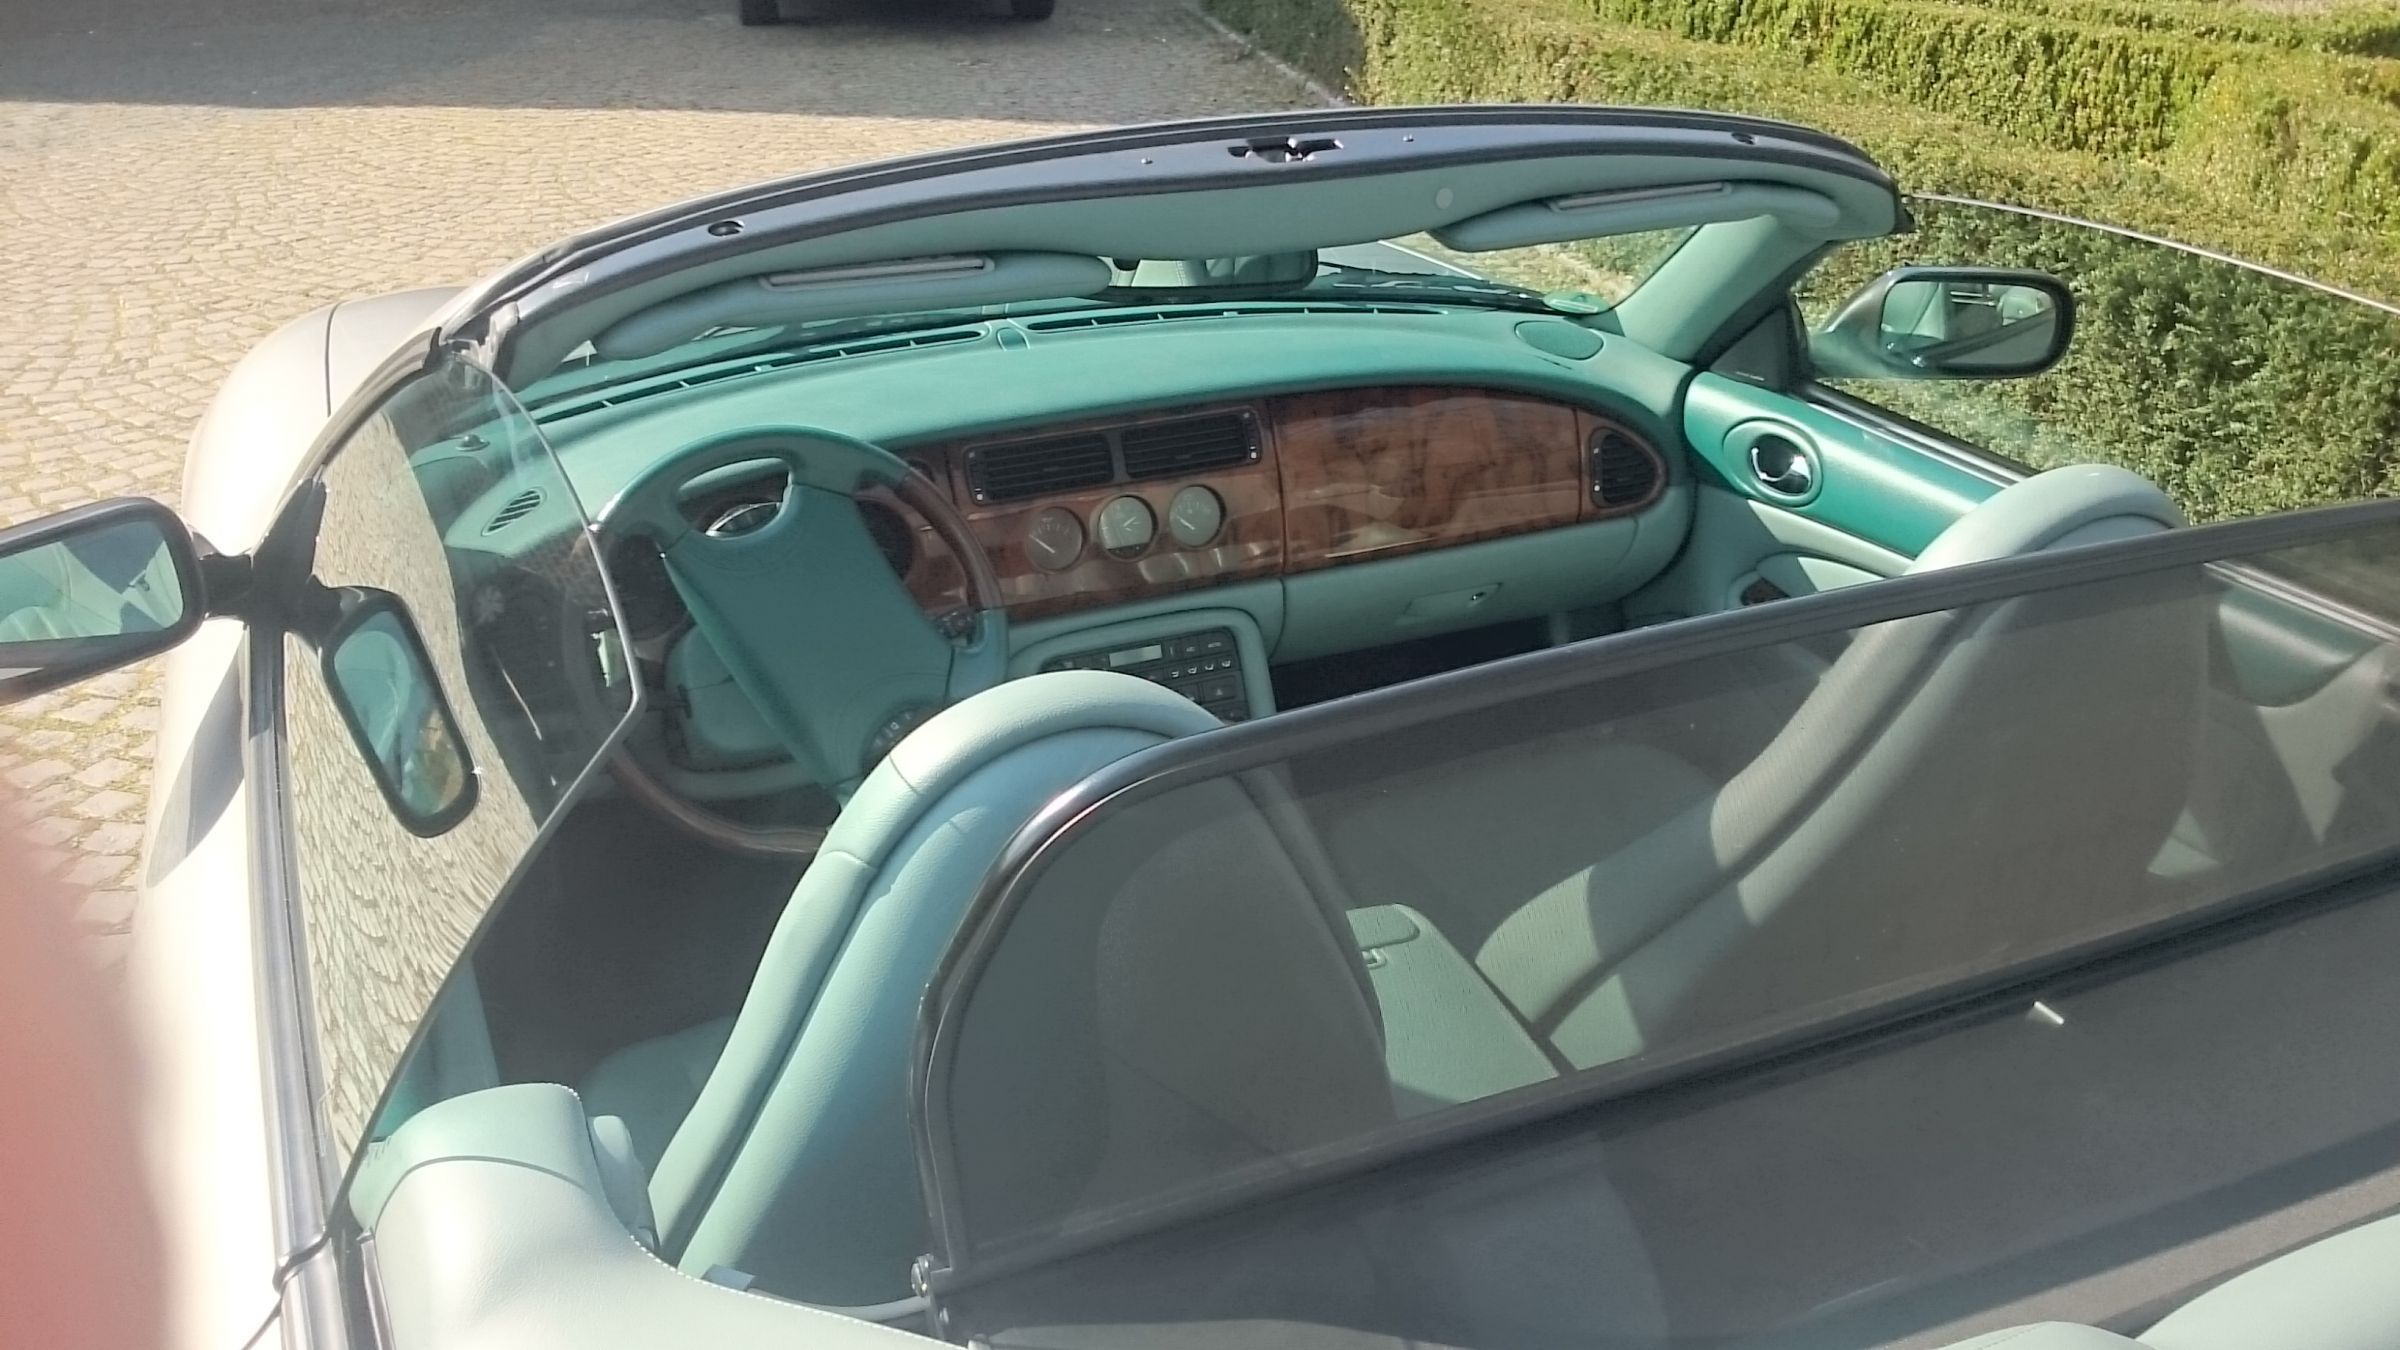 Interieur jaguar xkr convertible albums van onze leden for Interieur jaguar